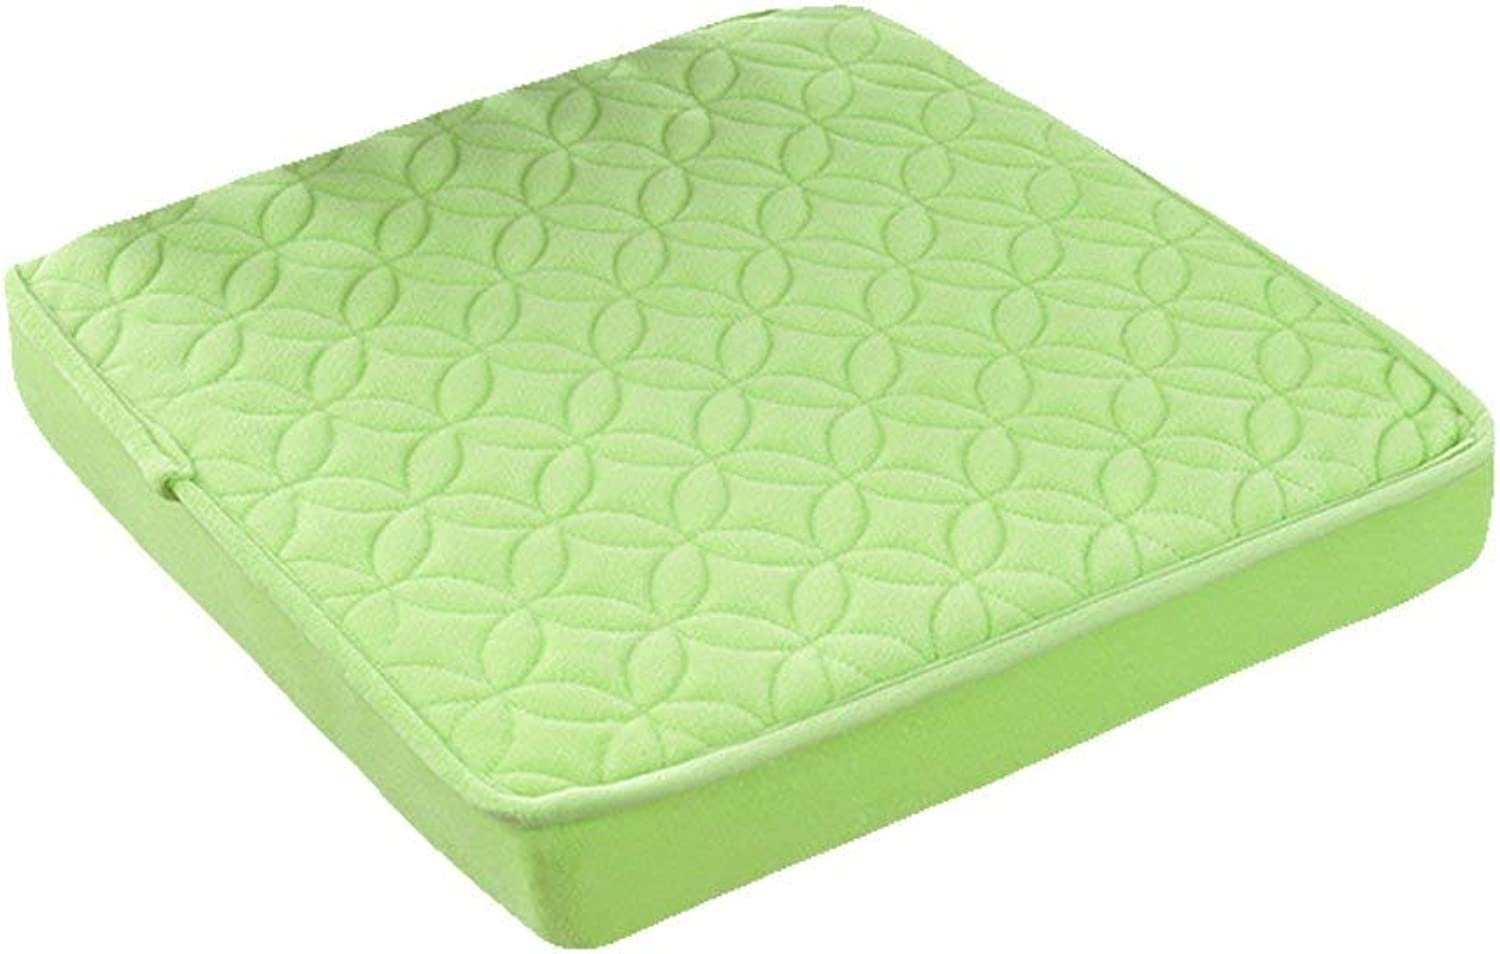 Seat Cushion Light Green Cushion Office Computer Chair Thicken Sponge Student Chair Cushion Soft and Comfortable Four Seasons Available y Non Slip Dinging Chair Pad (Size   50  50  8cm)